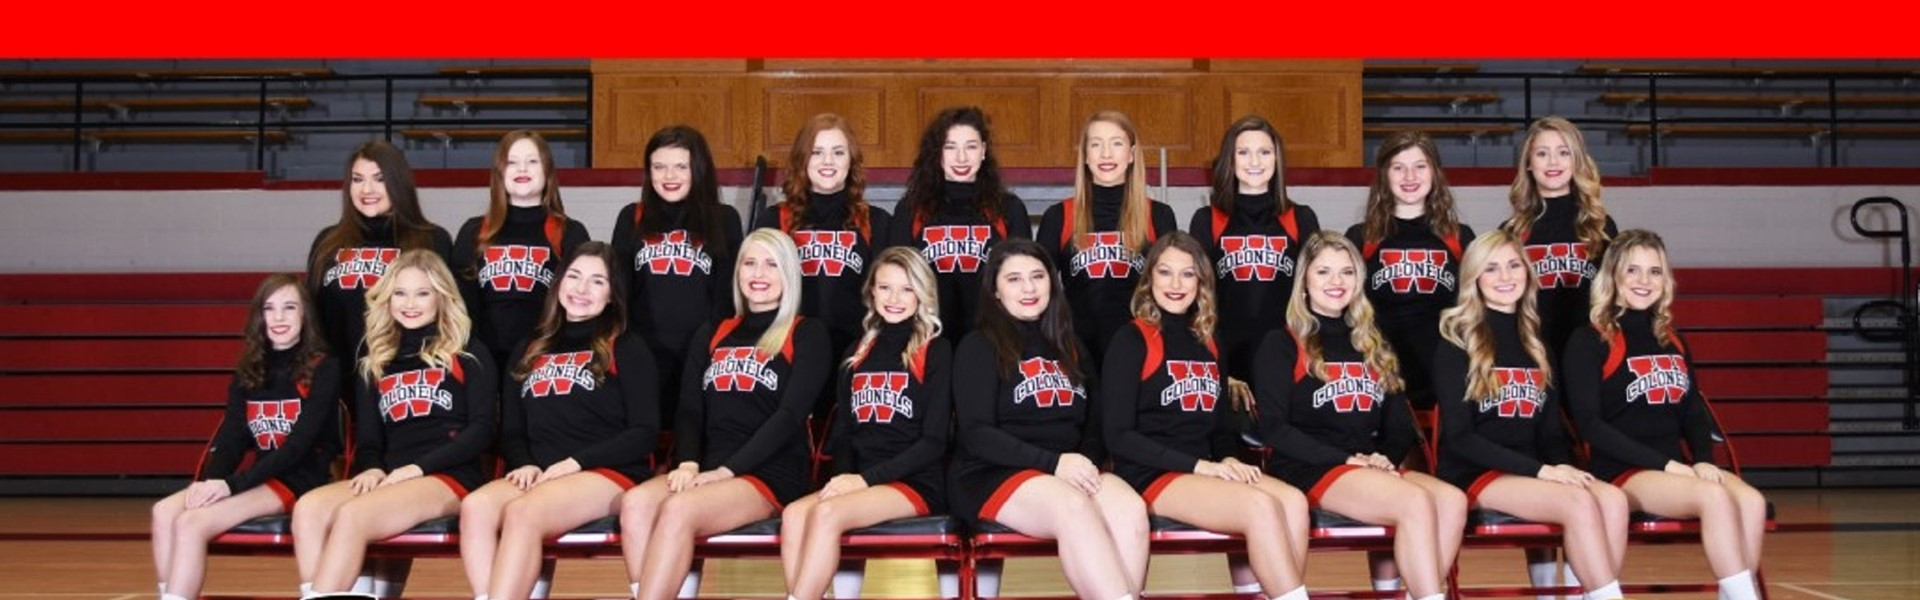 WCHS Cheerleaders (Courtesy of Scott Powell Photography)